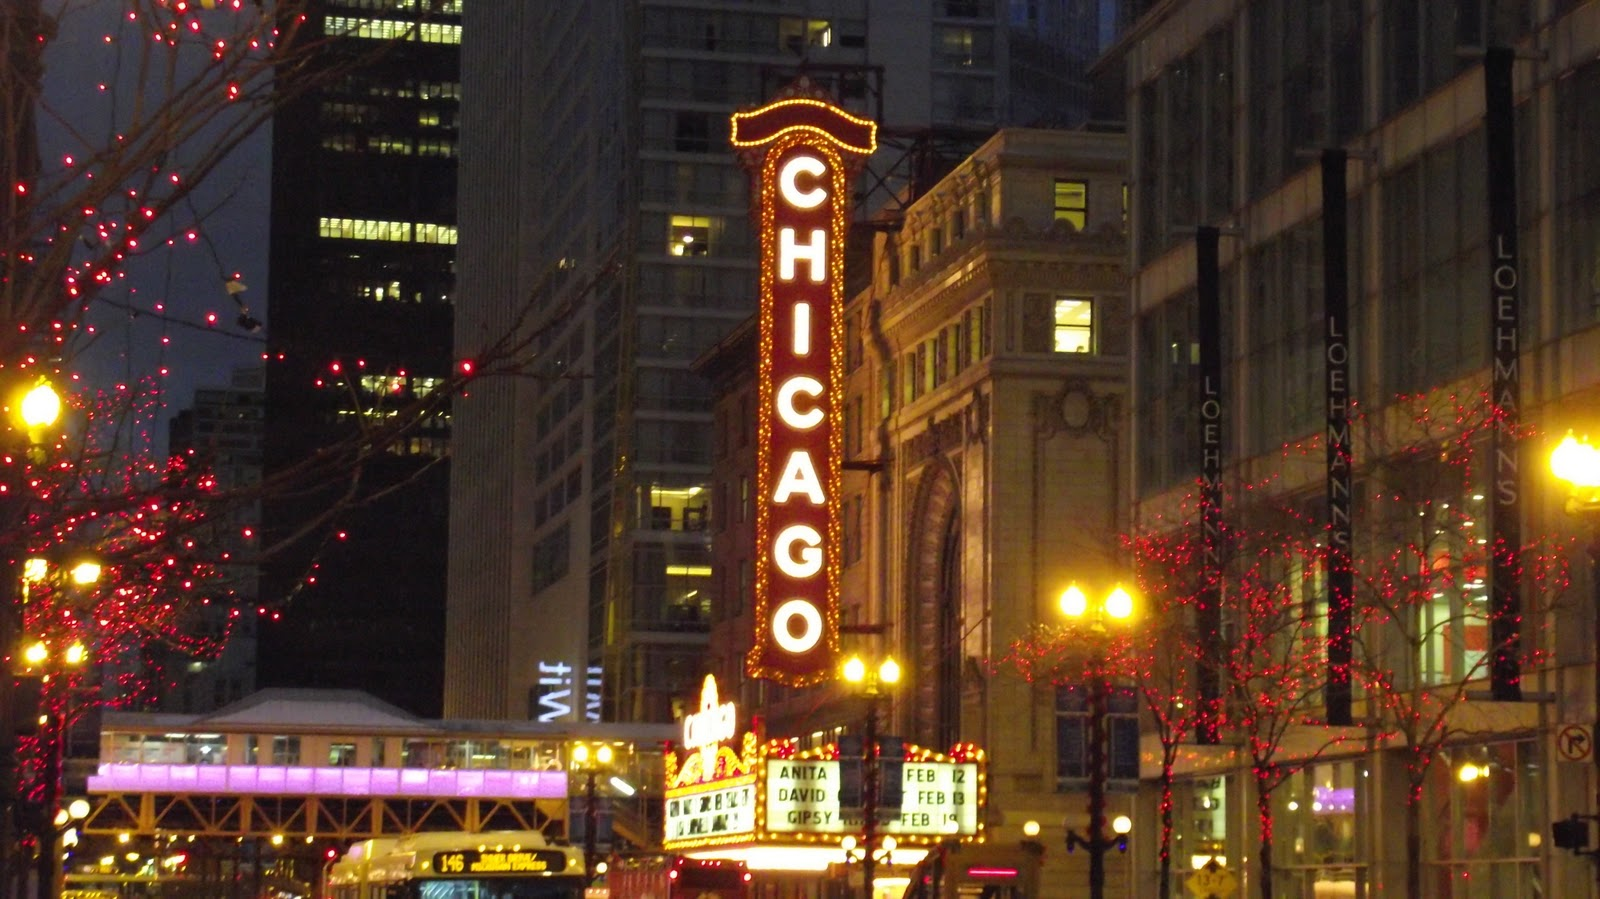 christmas-in-chicago-lmfrgdgr.jpg